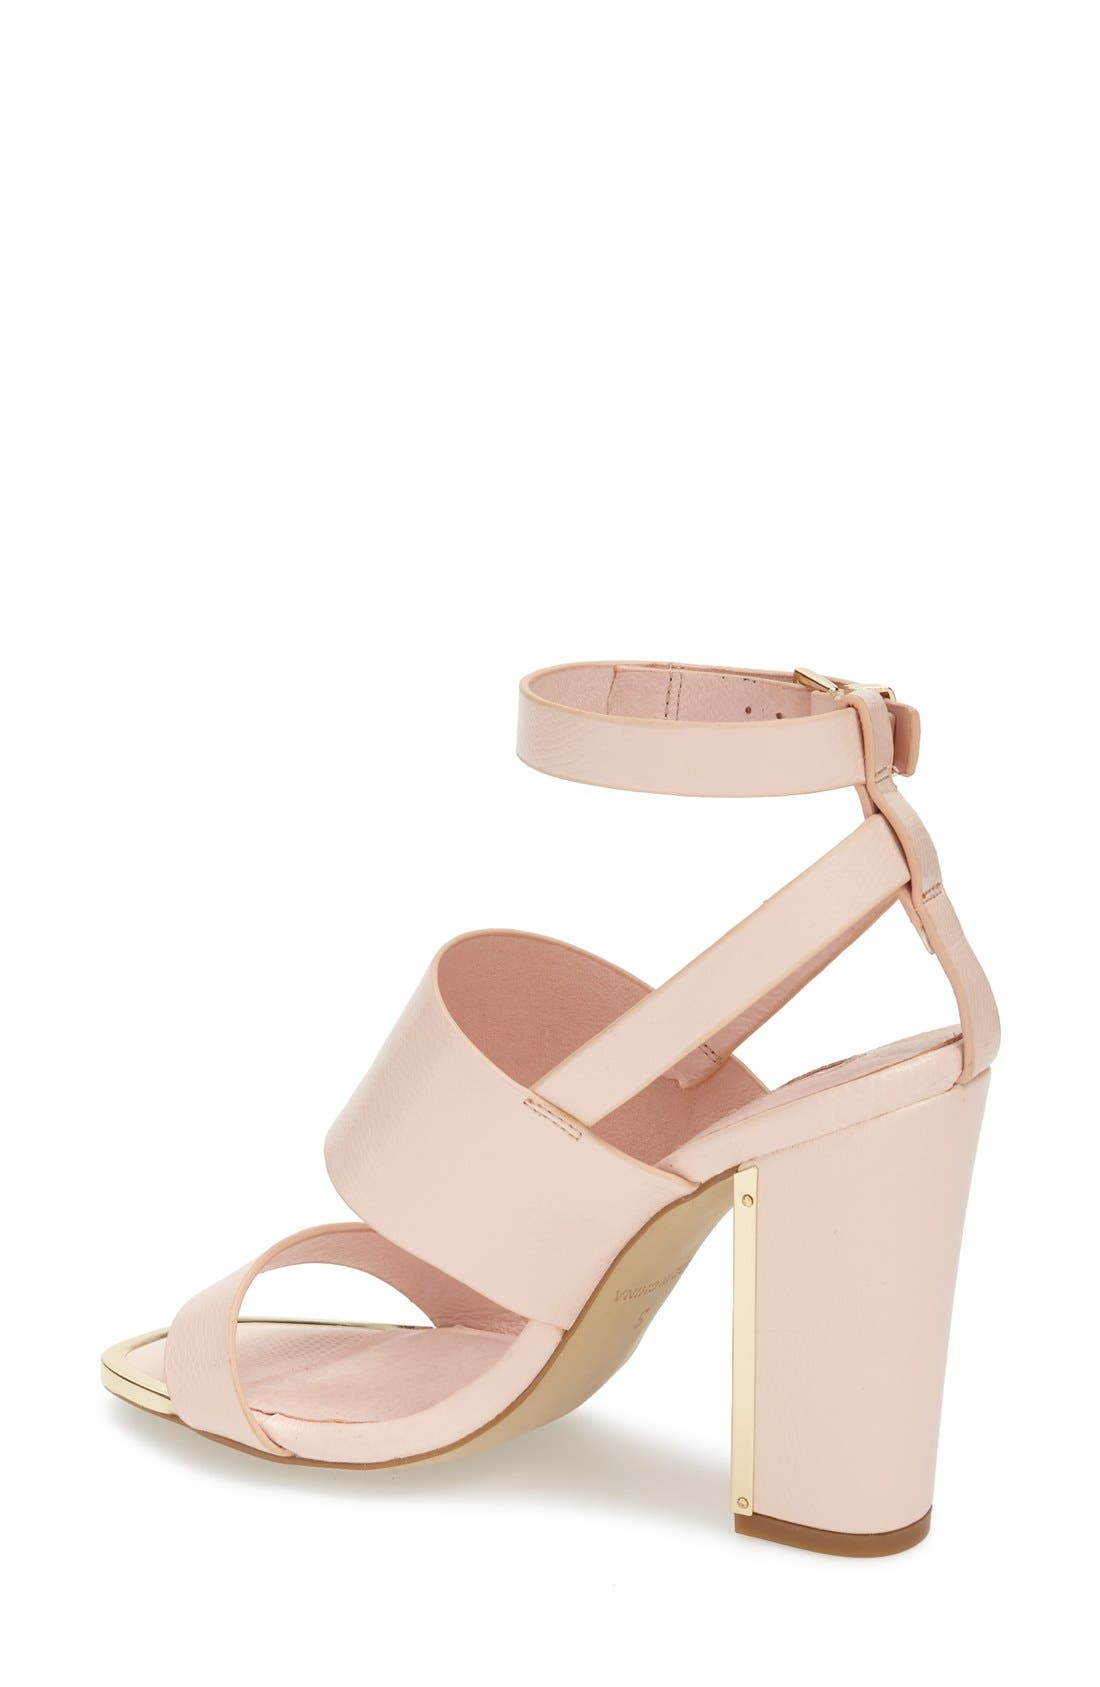 Alternate Image 2  - Topshop 'Riot' Lizard Embossed Ankle Strap Sandals (Women)